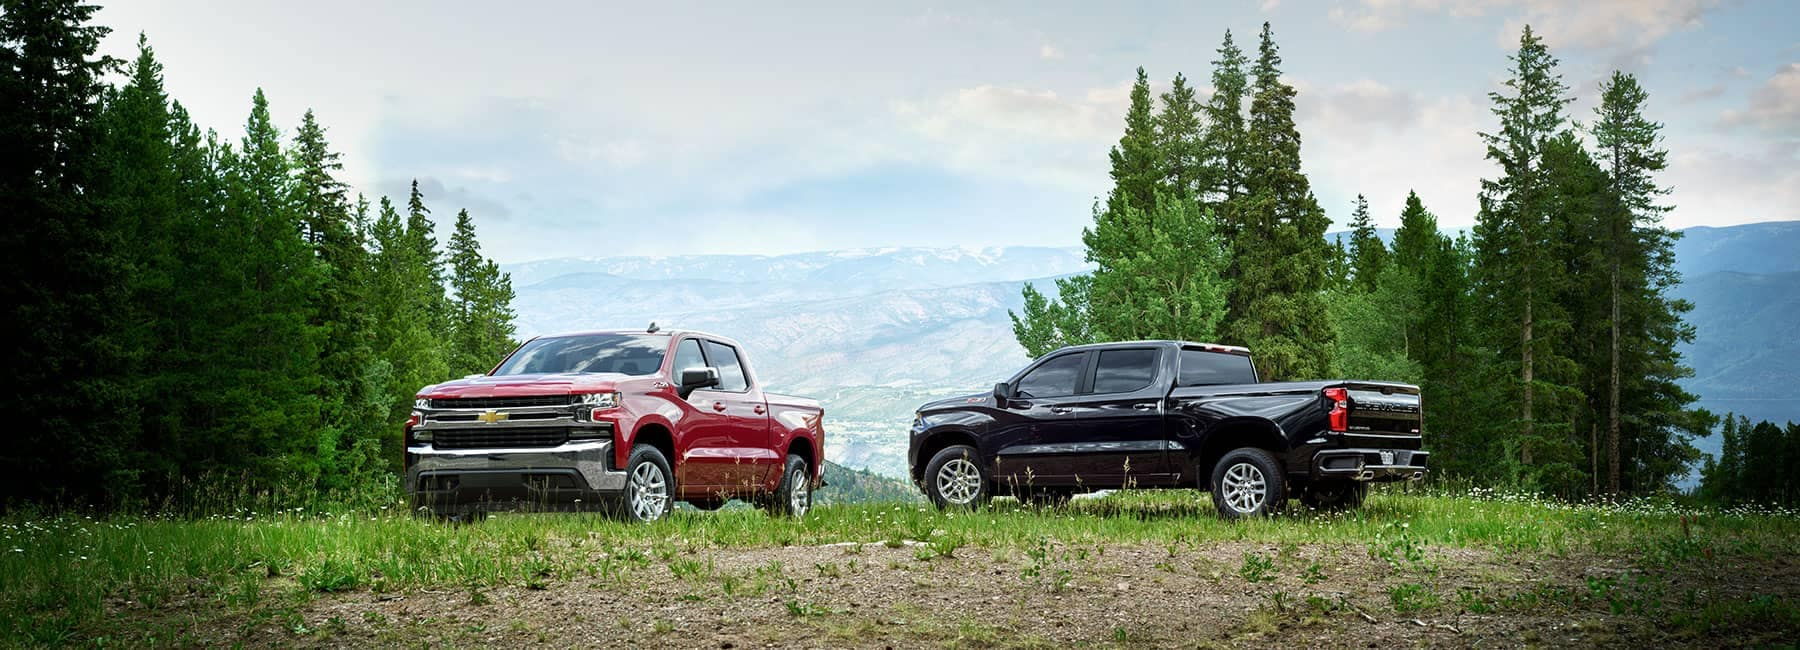 2019 Chevrolet Trucks Parked on a Hill